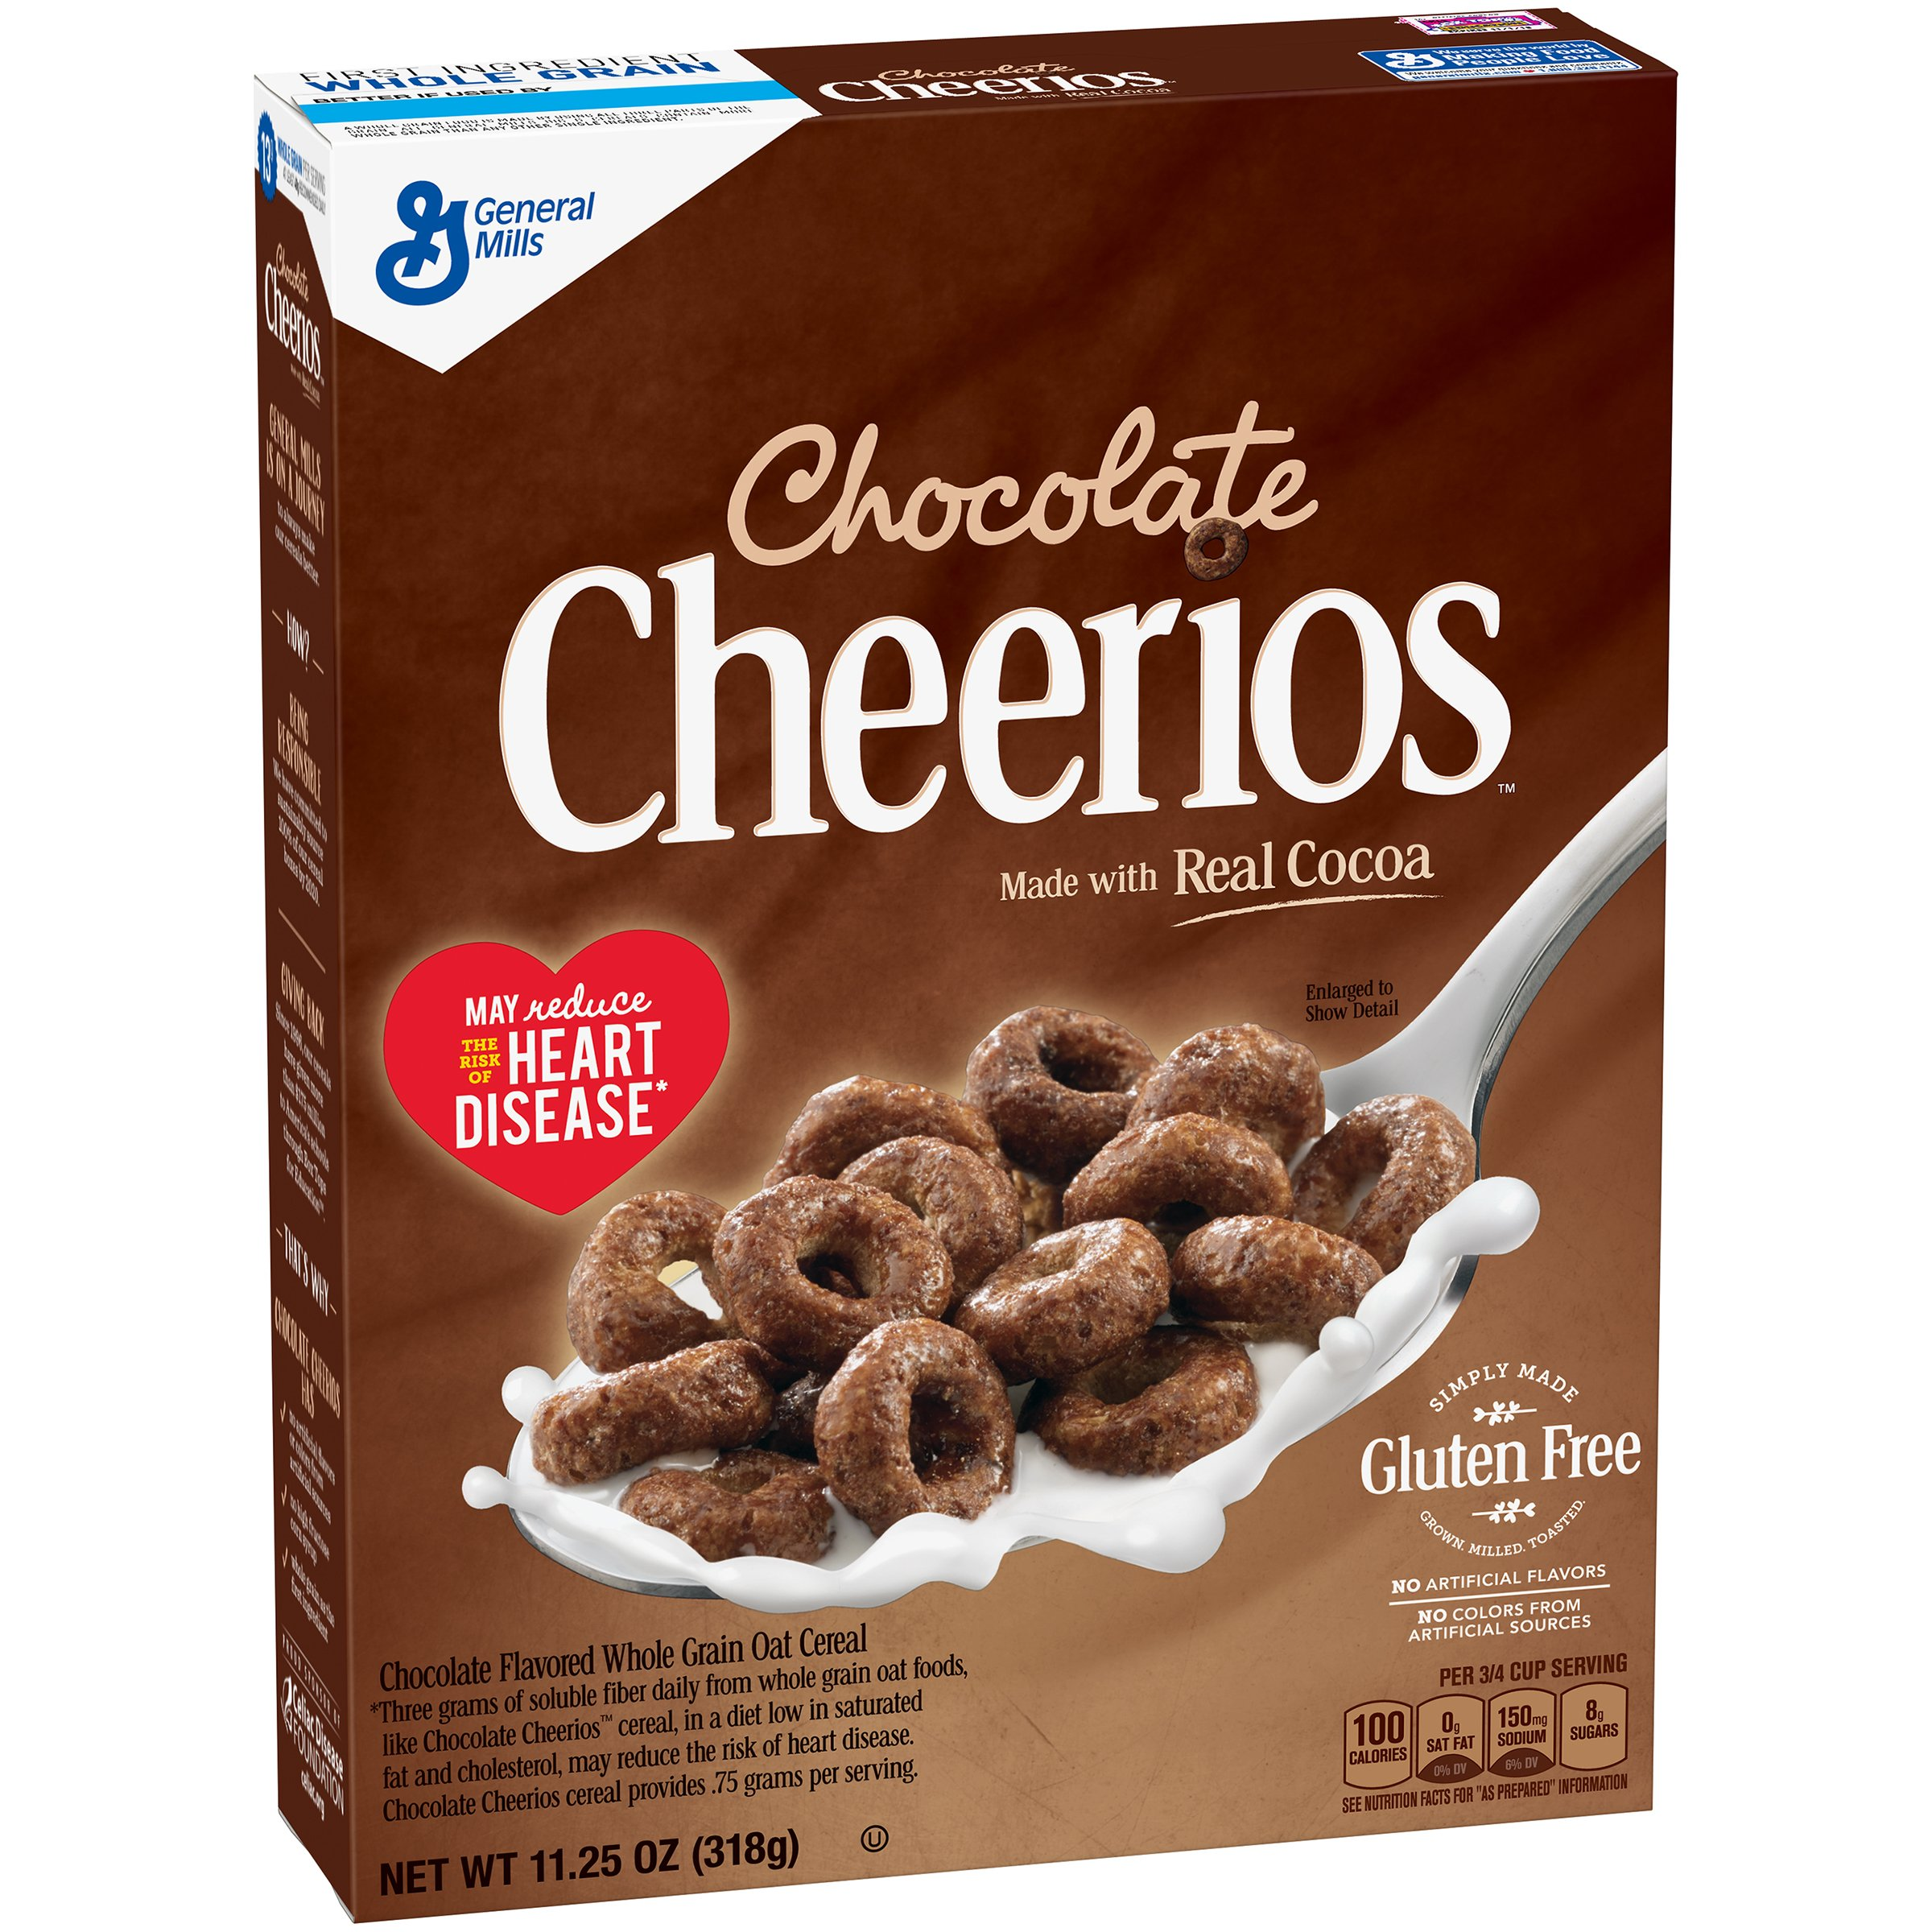 Chocolate Cheerios Cereal, Gluten Free, 11.25 oz (Pack of 12) by General Mills Cereal